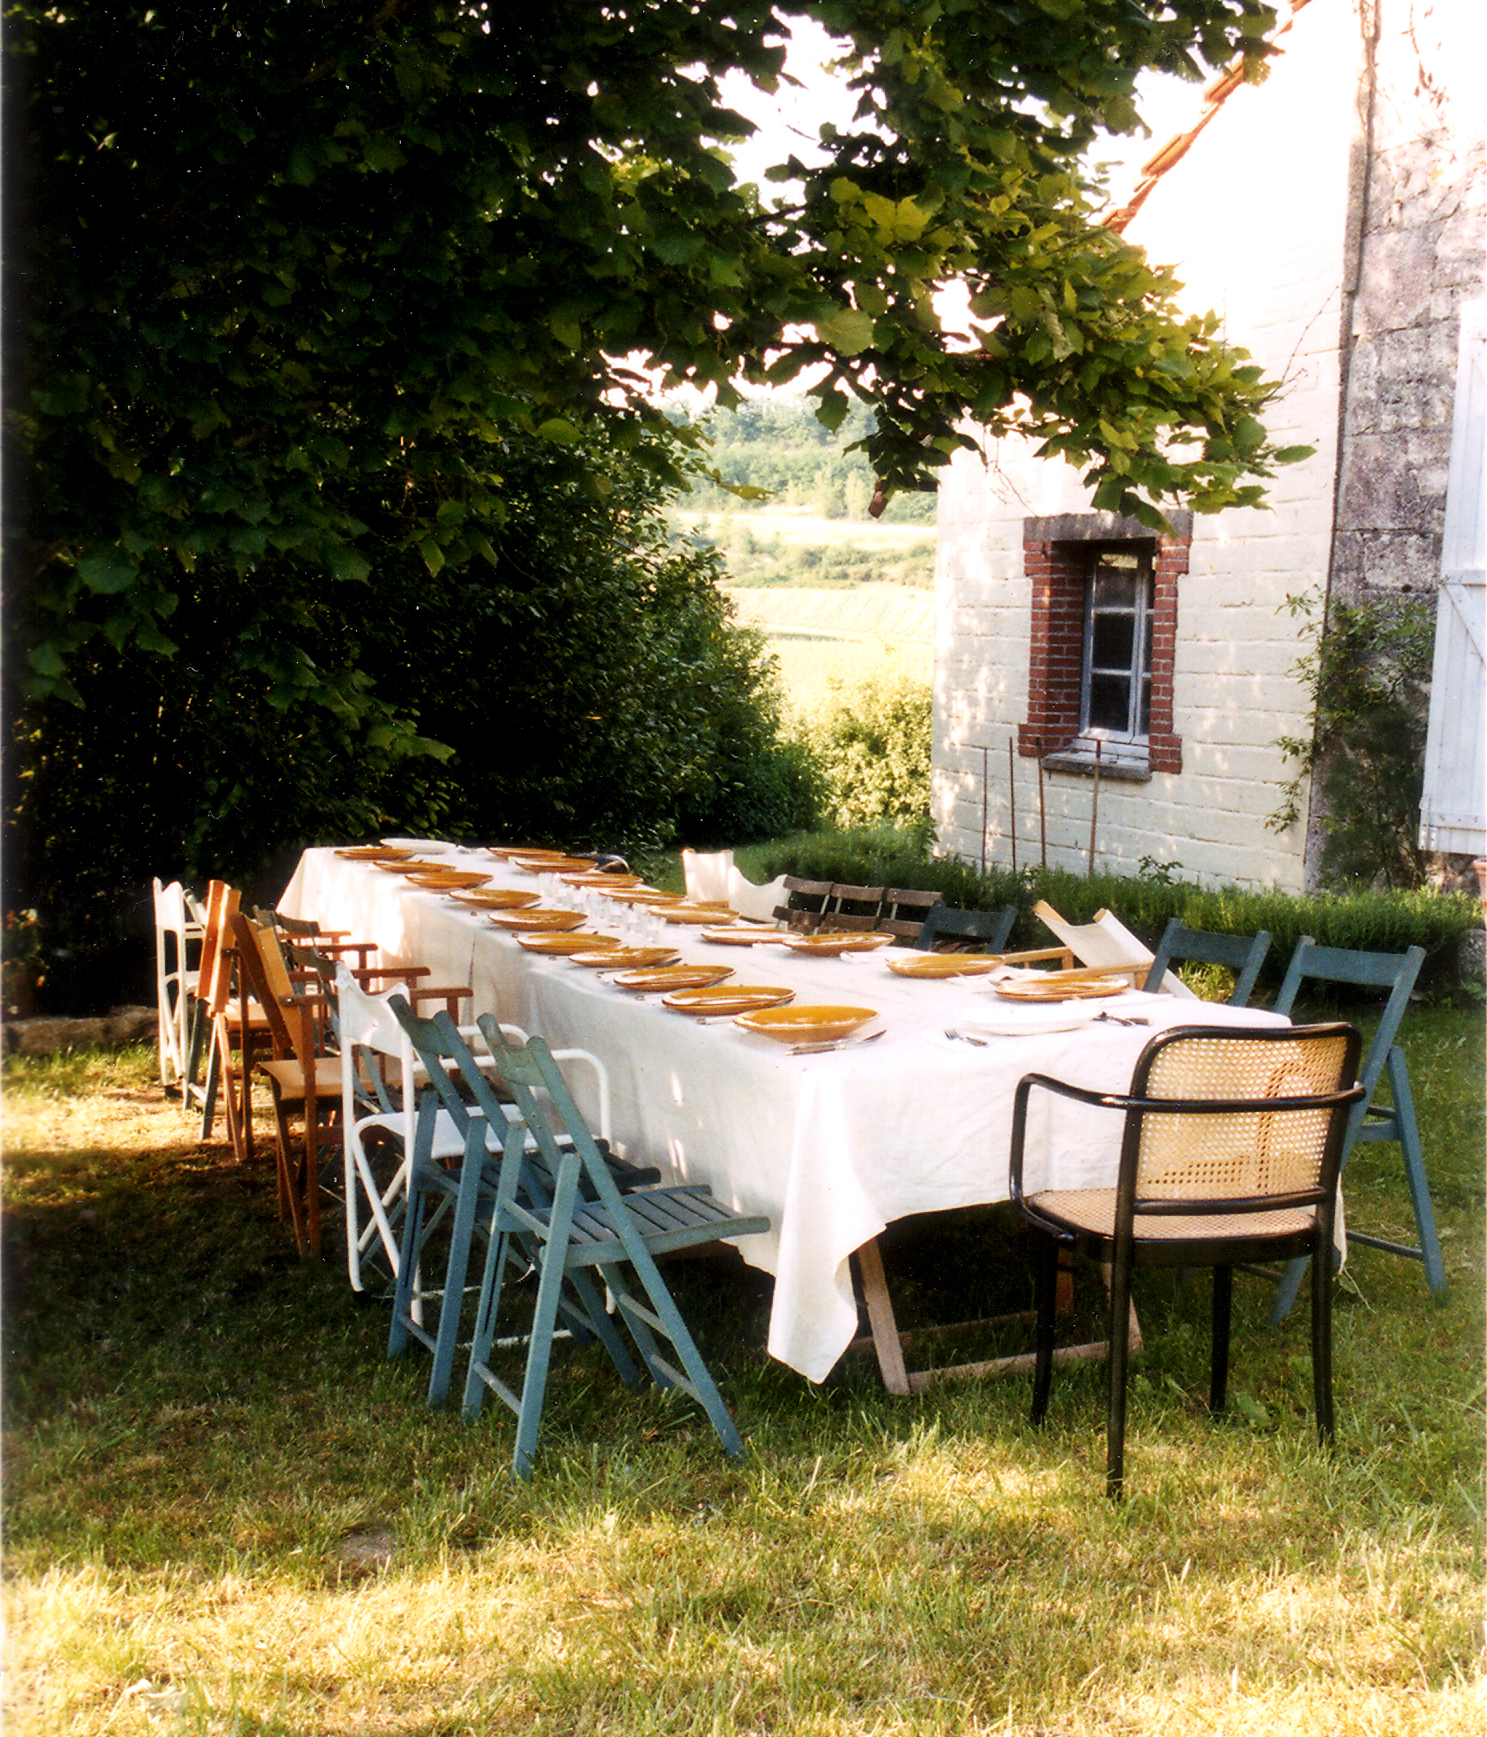 Table laid in the French garden